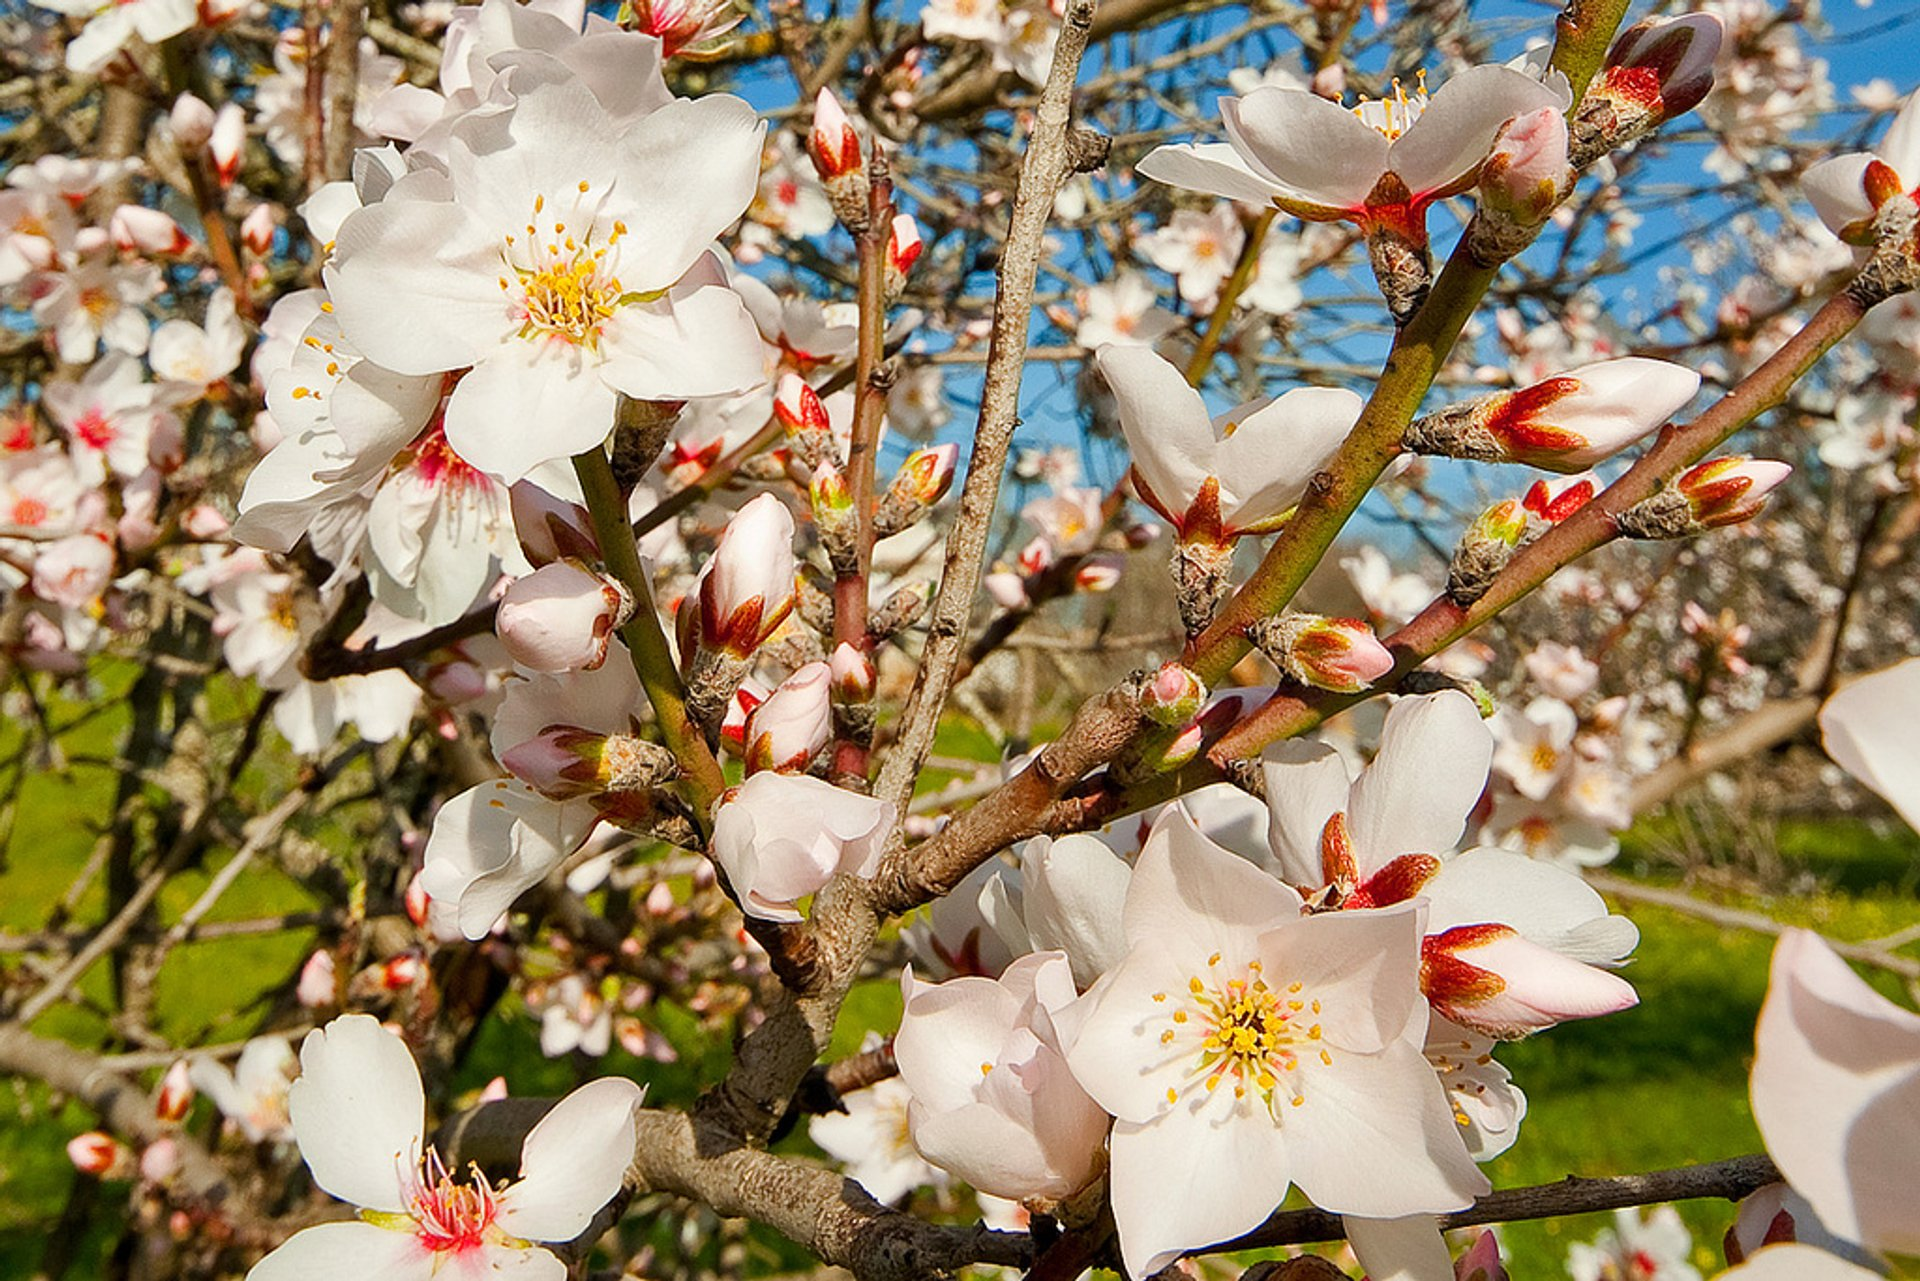 Almond Tree Blossom in Portugal 2020 - Best Time